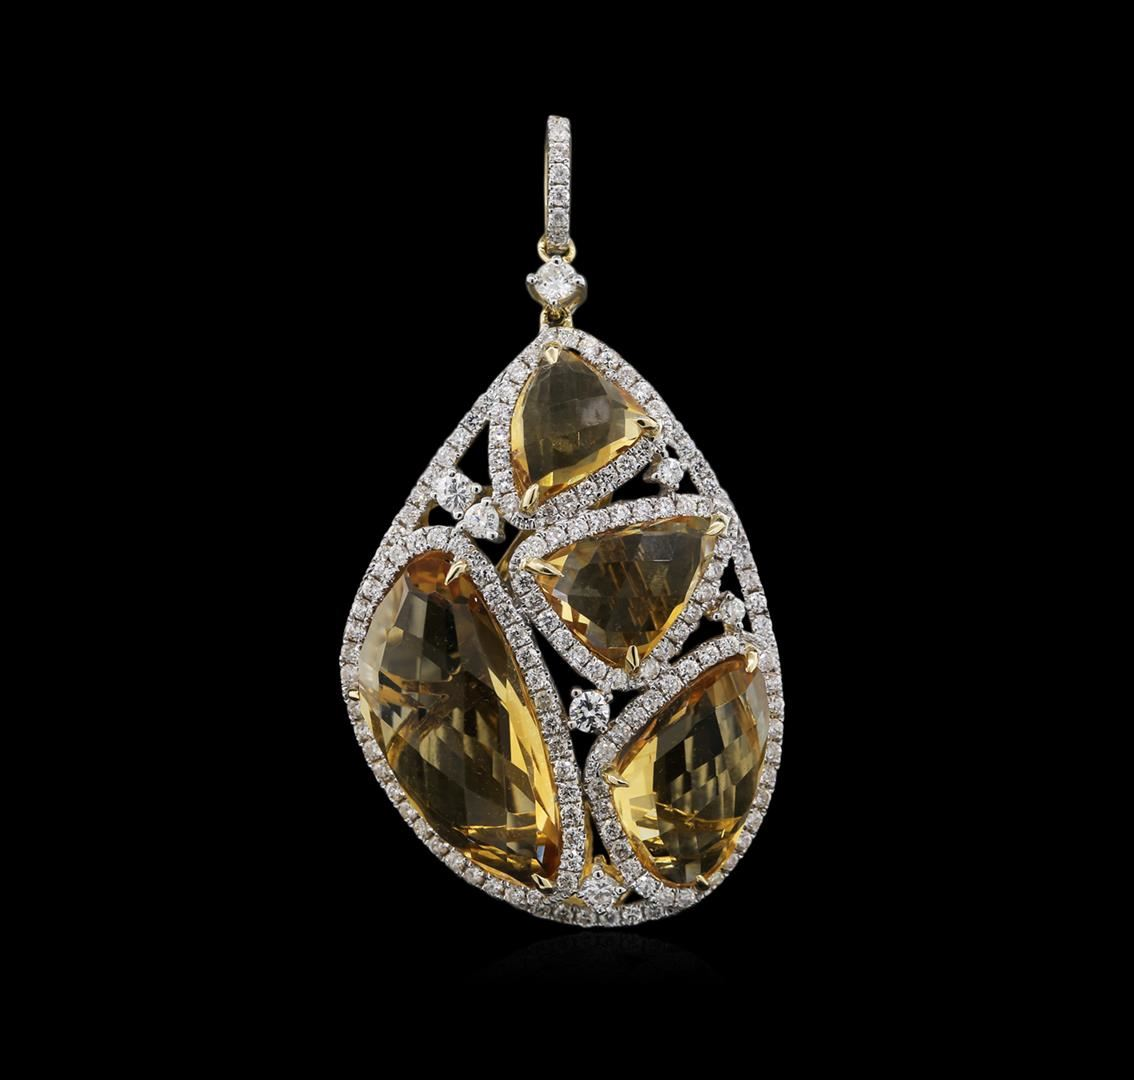 Beloved Sparkles Boutique Citrine Pear Dangle Halo Vintage Cubic Zirconia Pendant Necklace For Daily Special And Wedding Events Fashion